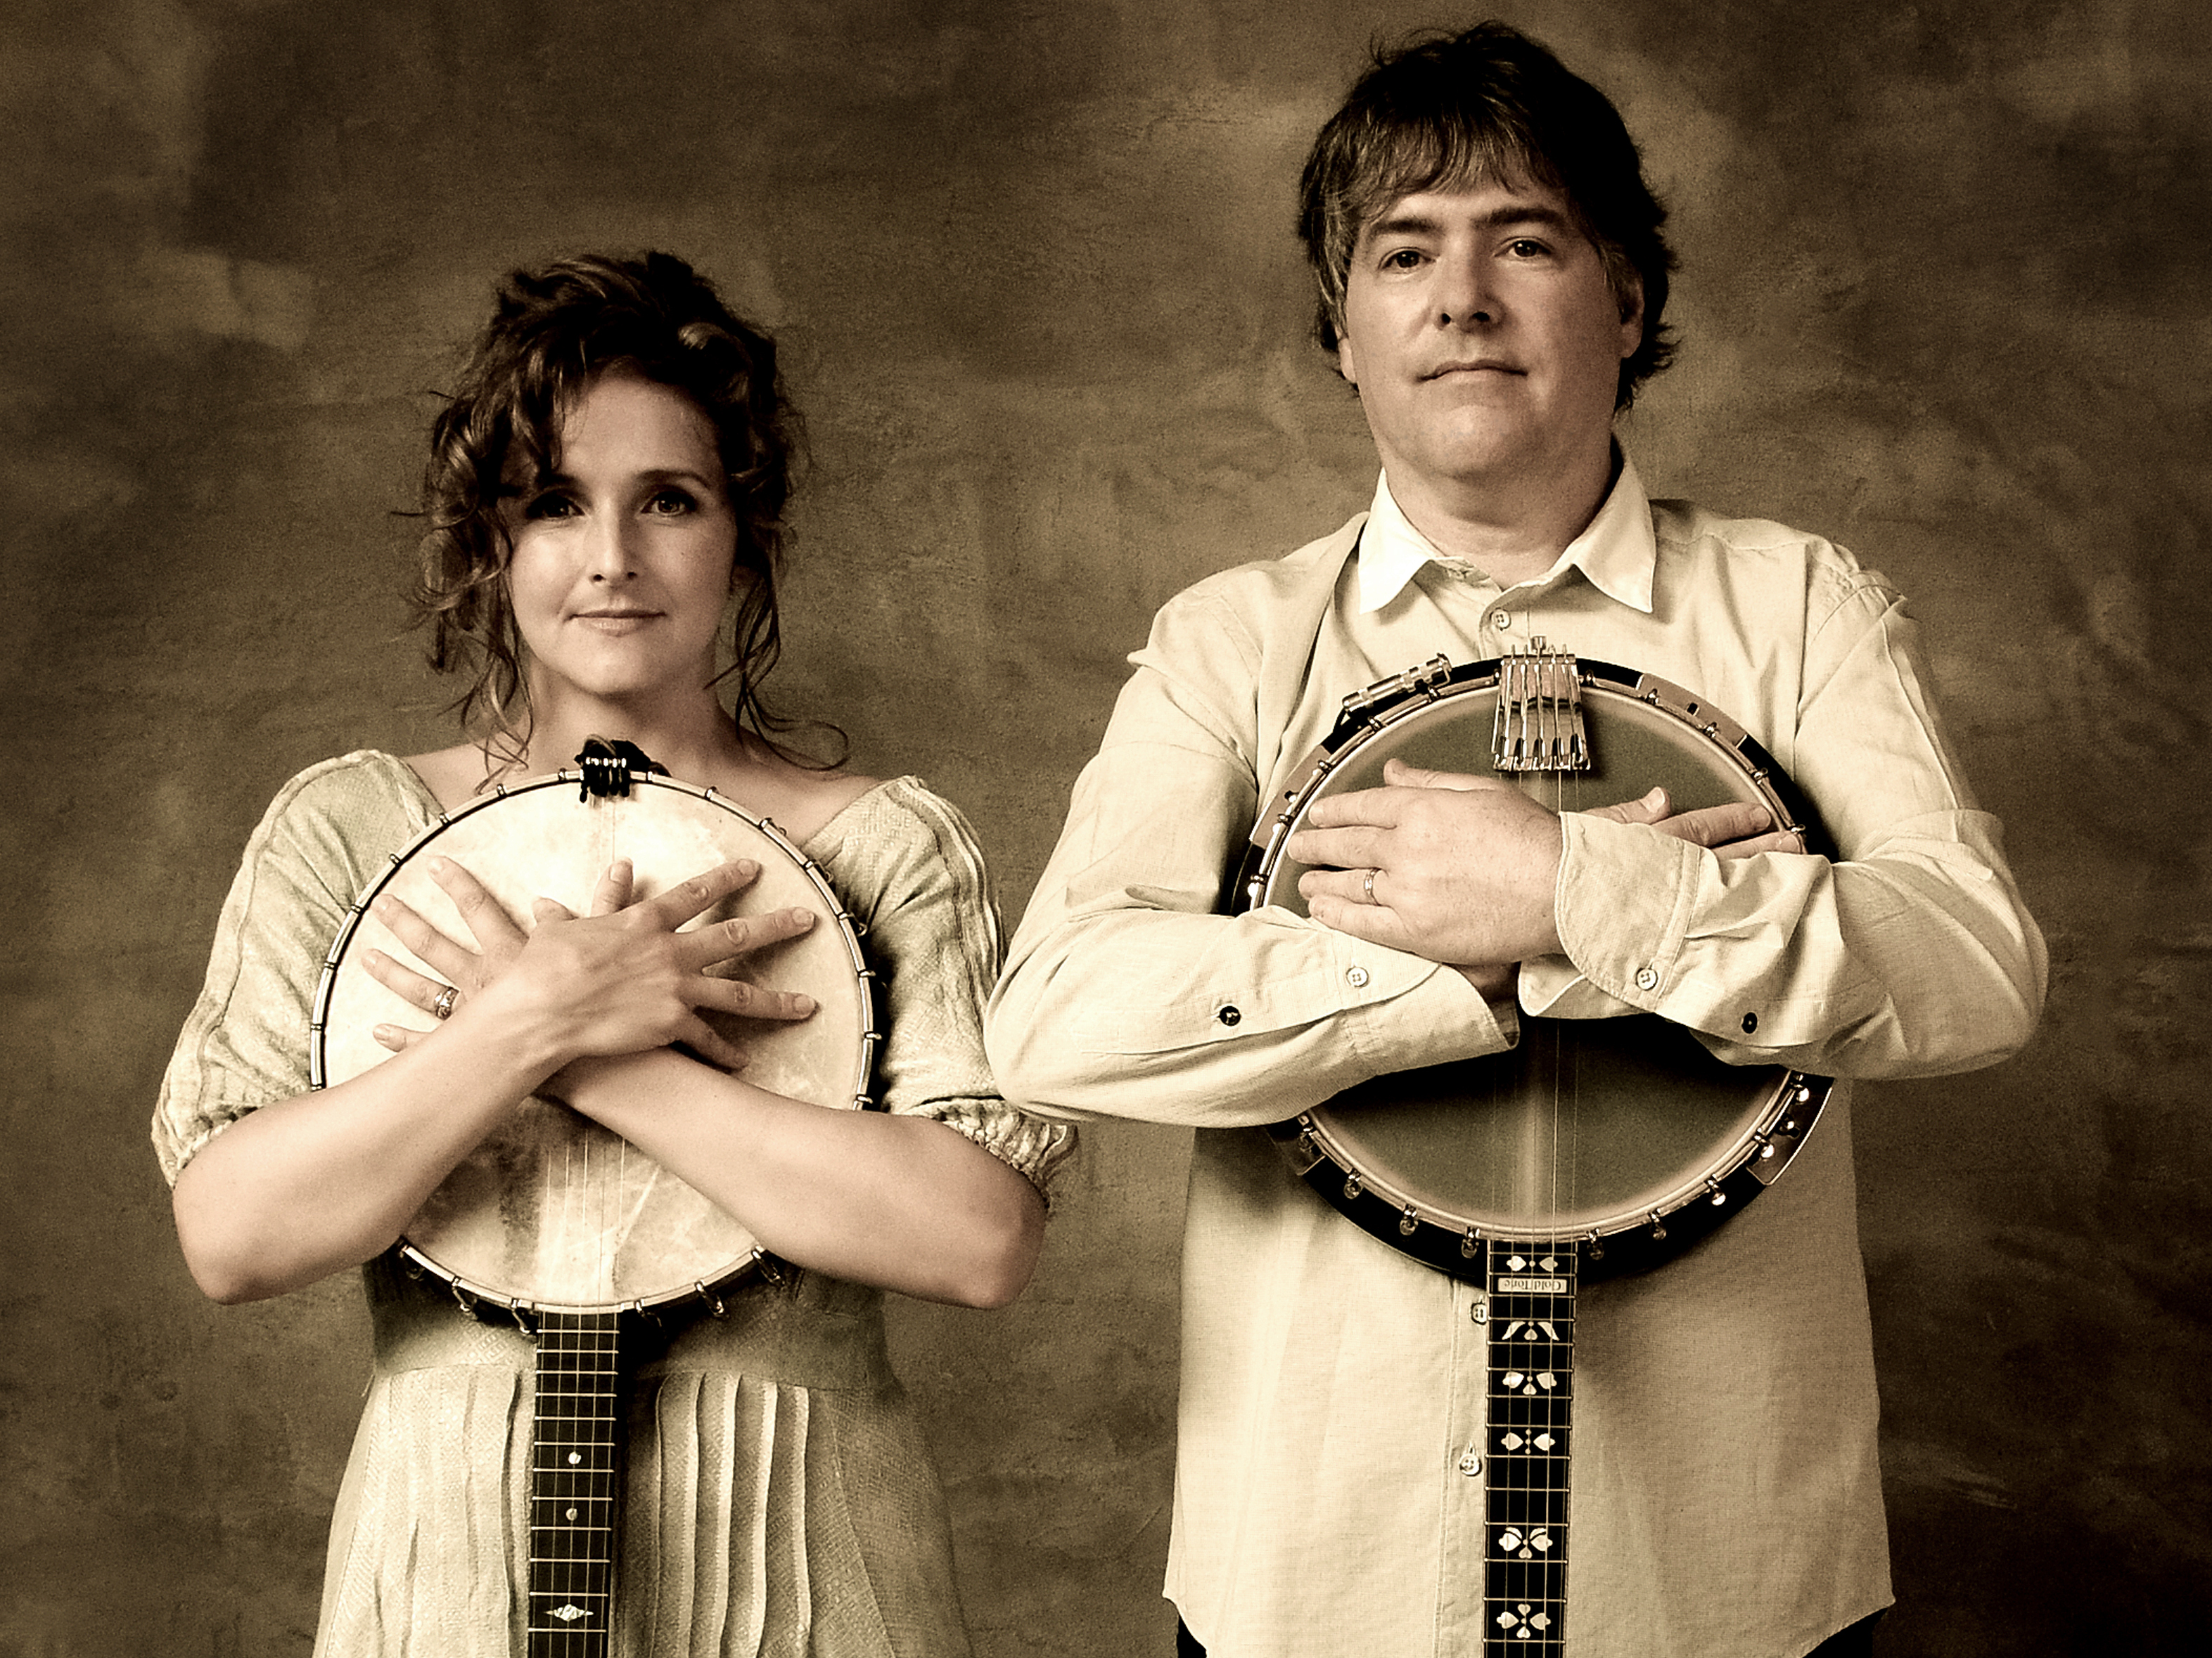 Béla Fleck And Abigail Washburn On Teaming Up, Finally